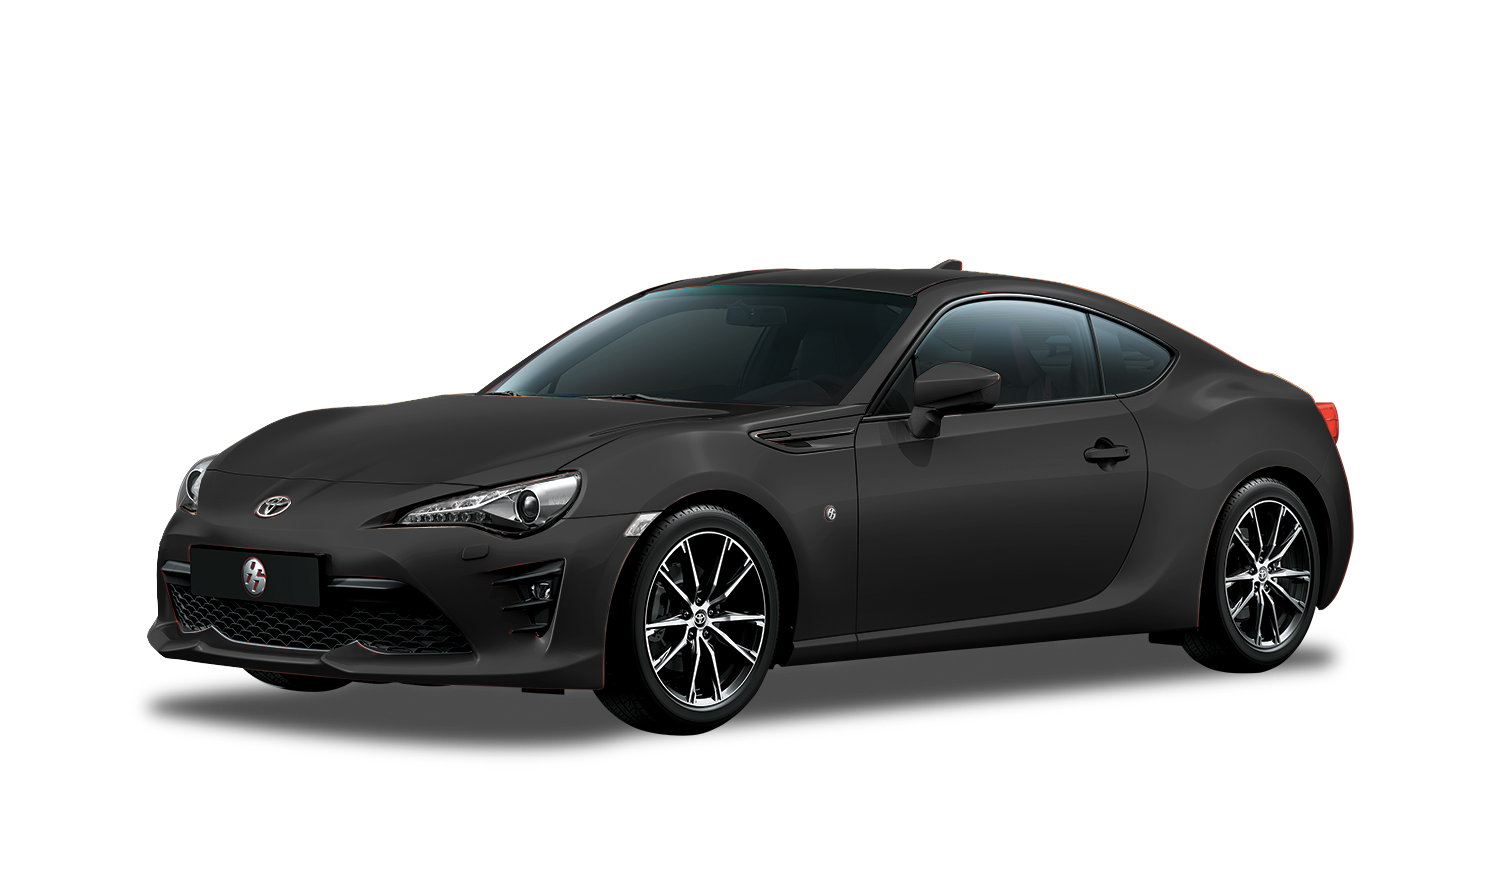 Toyota 86 Gris Obscuro